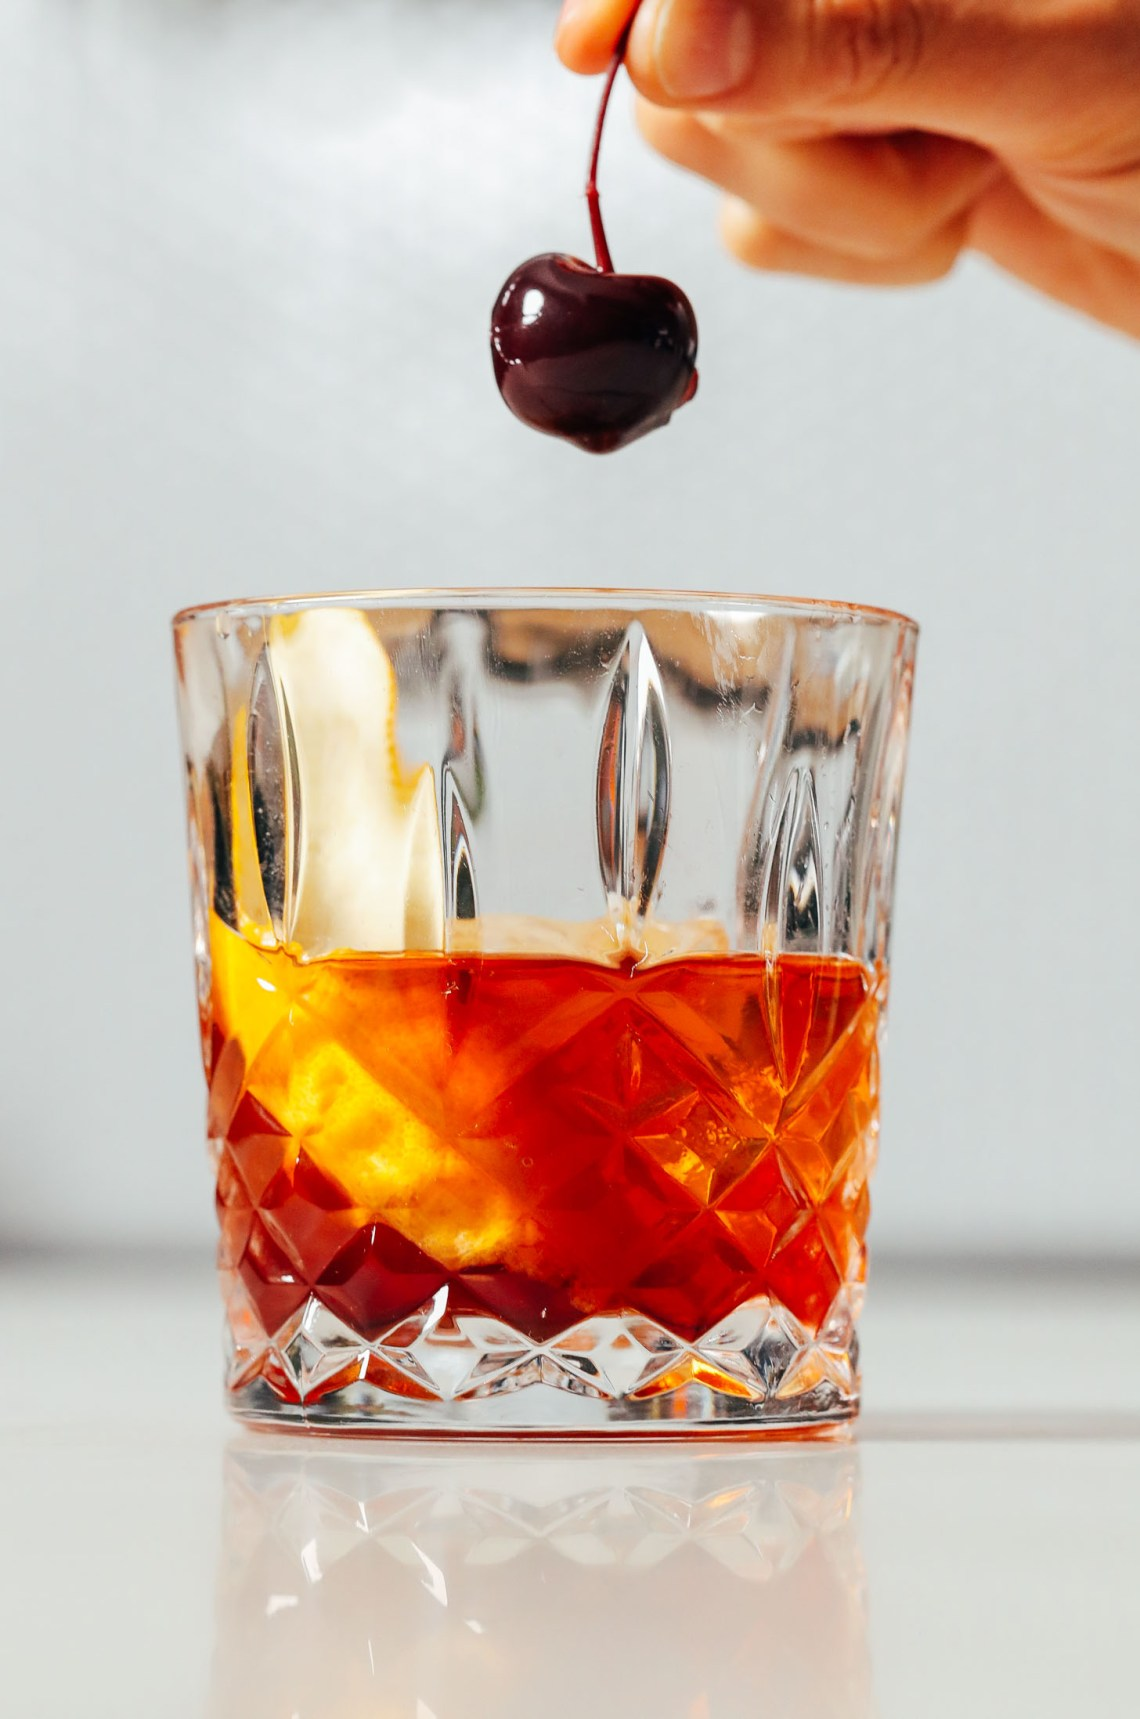 Holding a cocktail cherry over an Old Fashioned